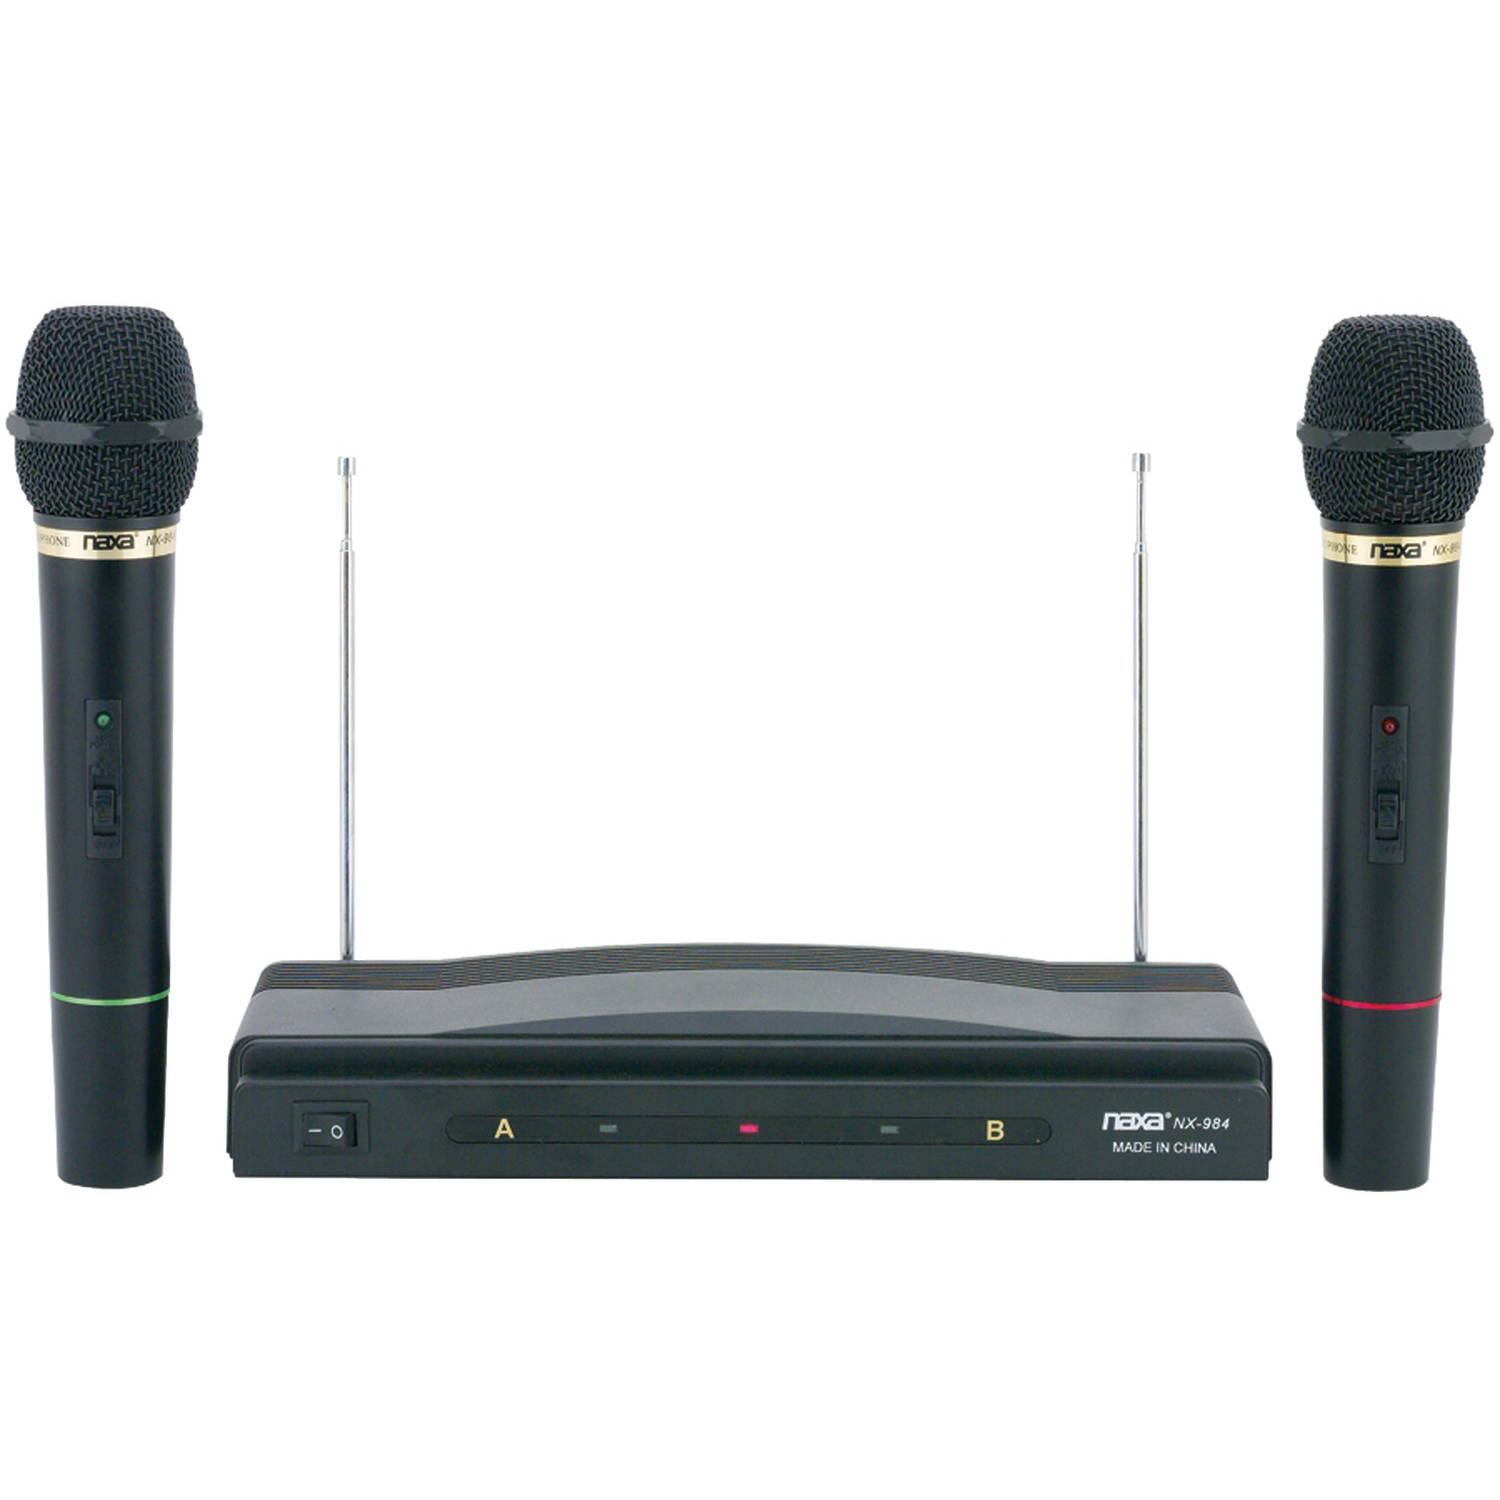 Naxa NAXM984 Professional Dual Wireless Microphone Kit by Naxa